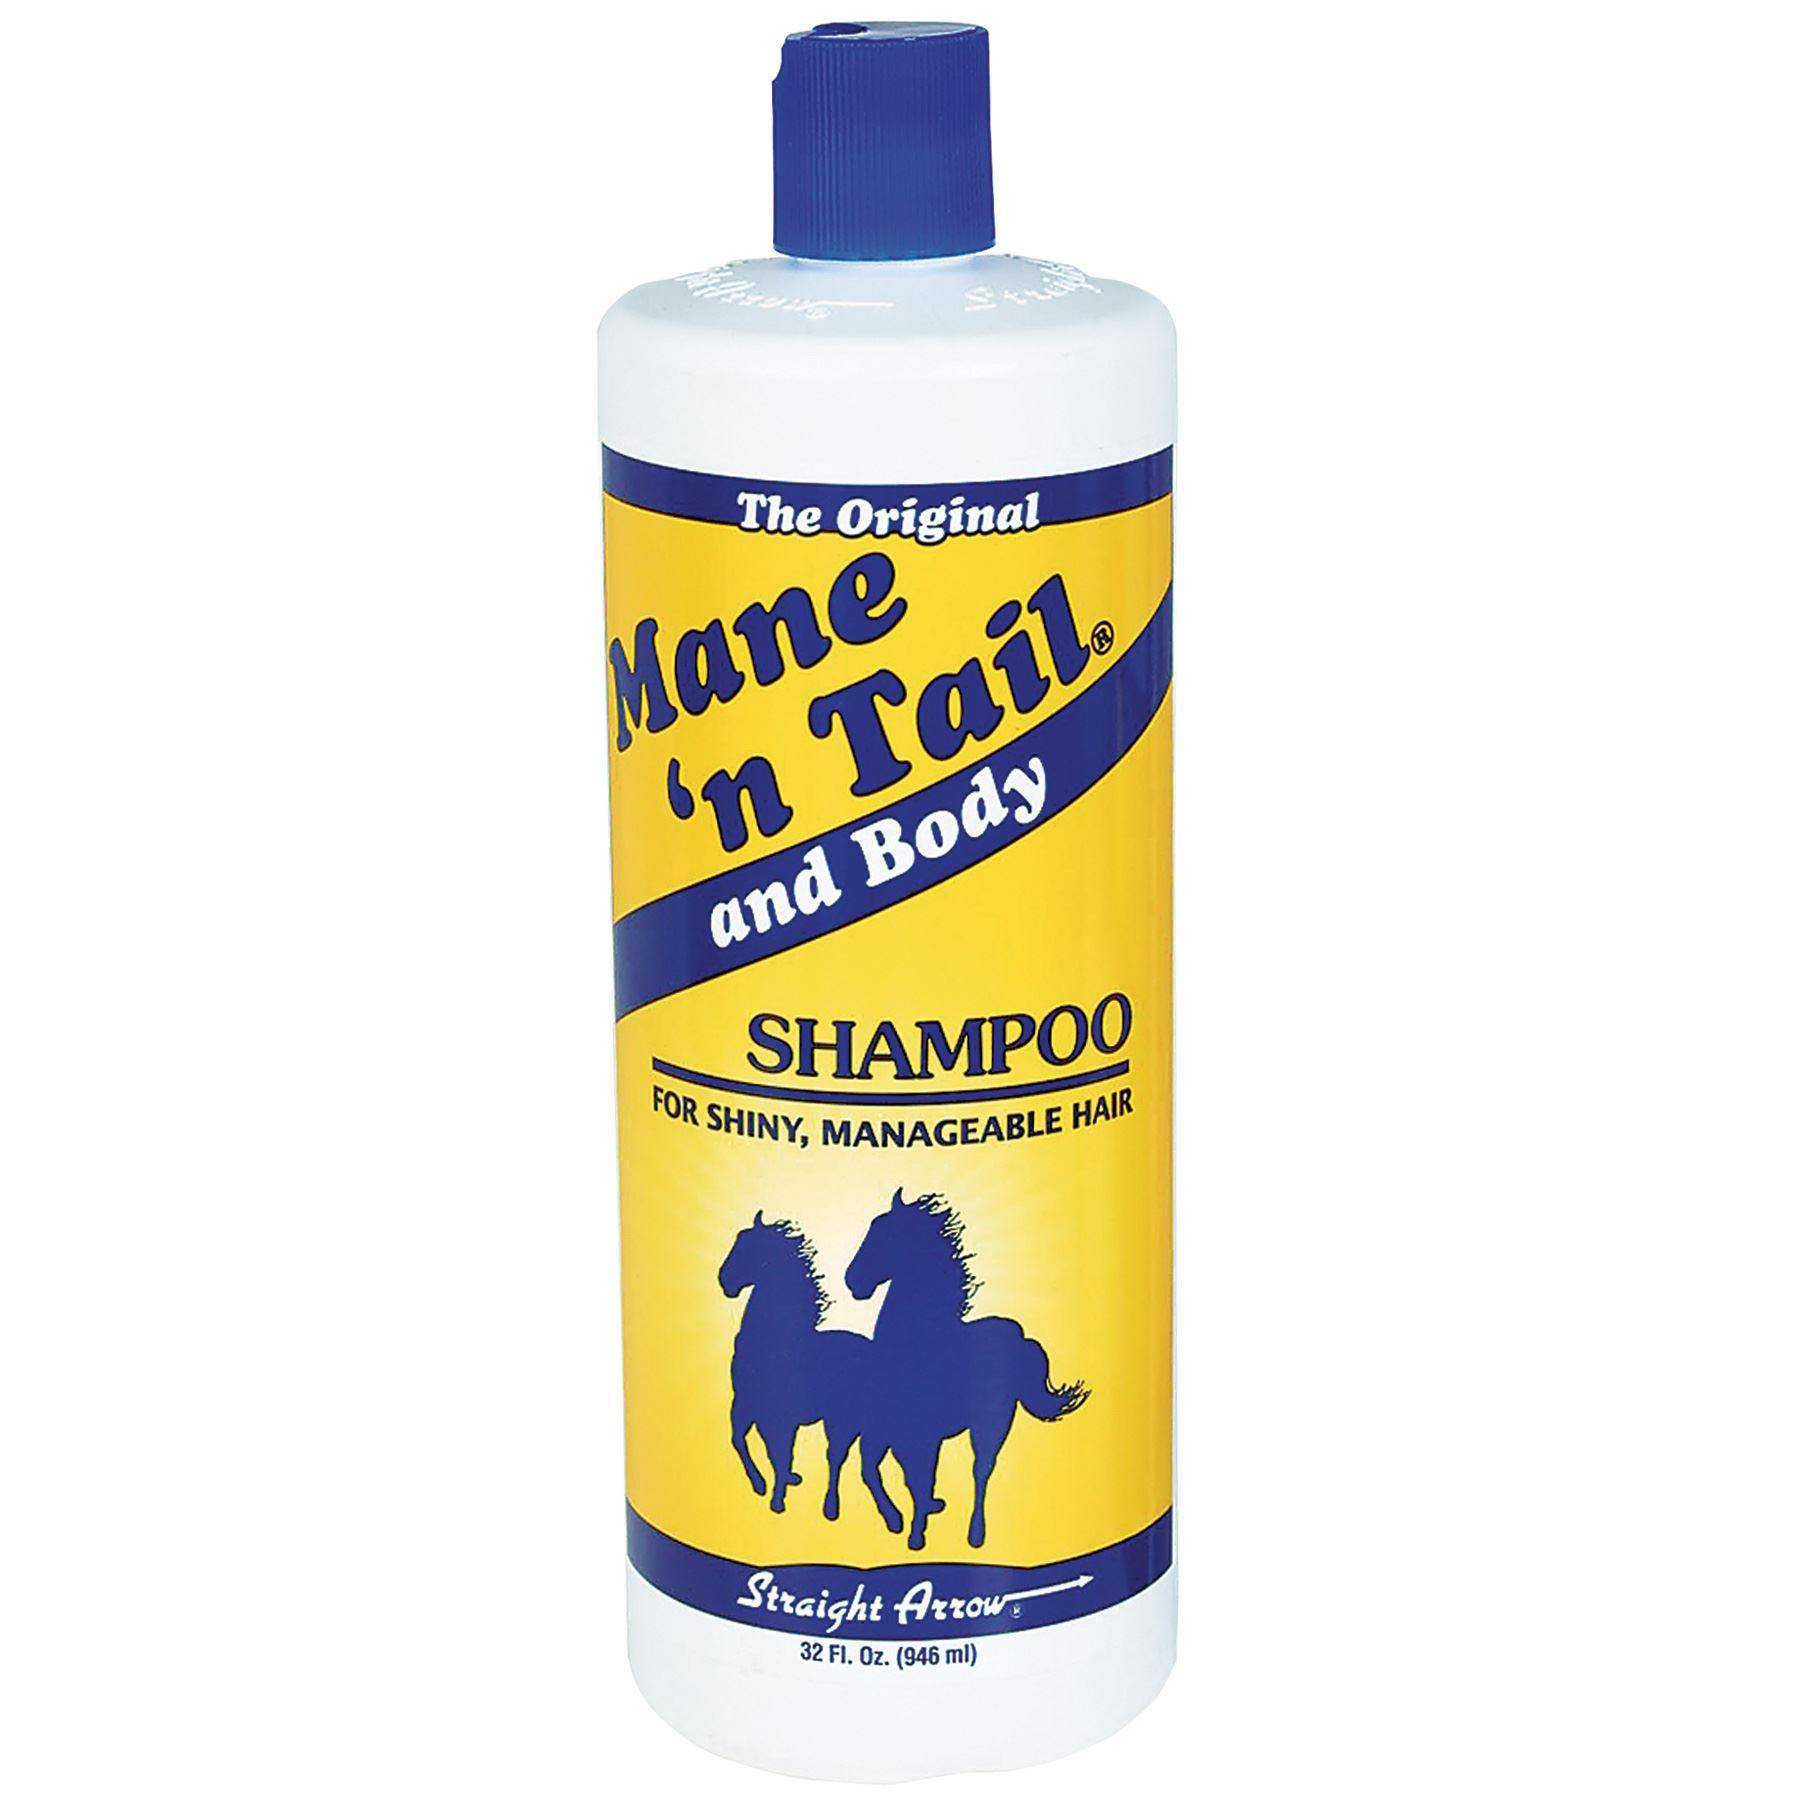 Mane n tail and body shampoo review